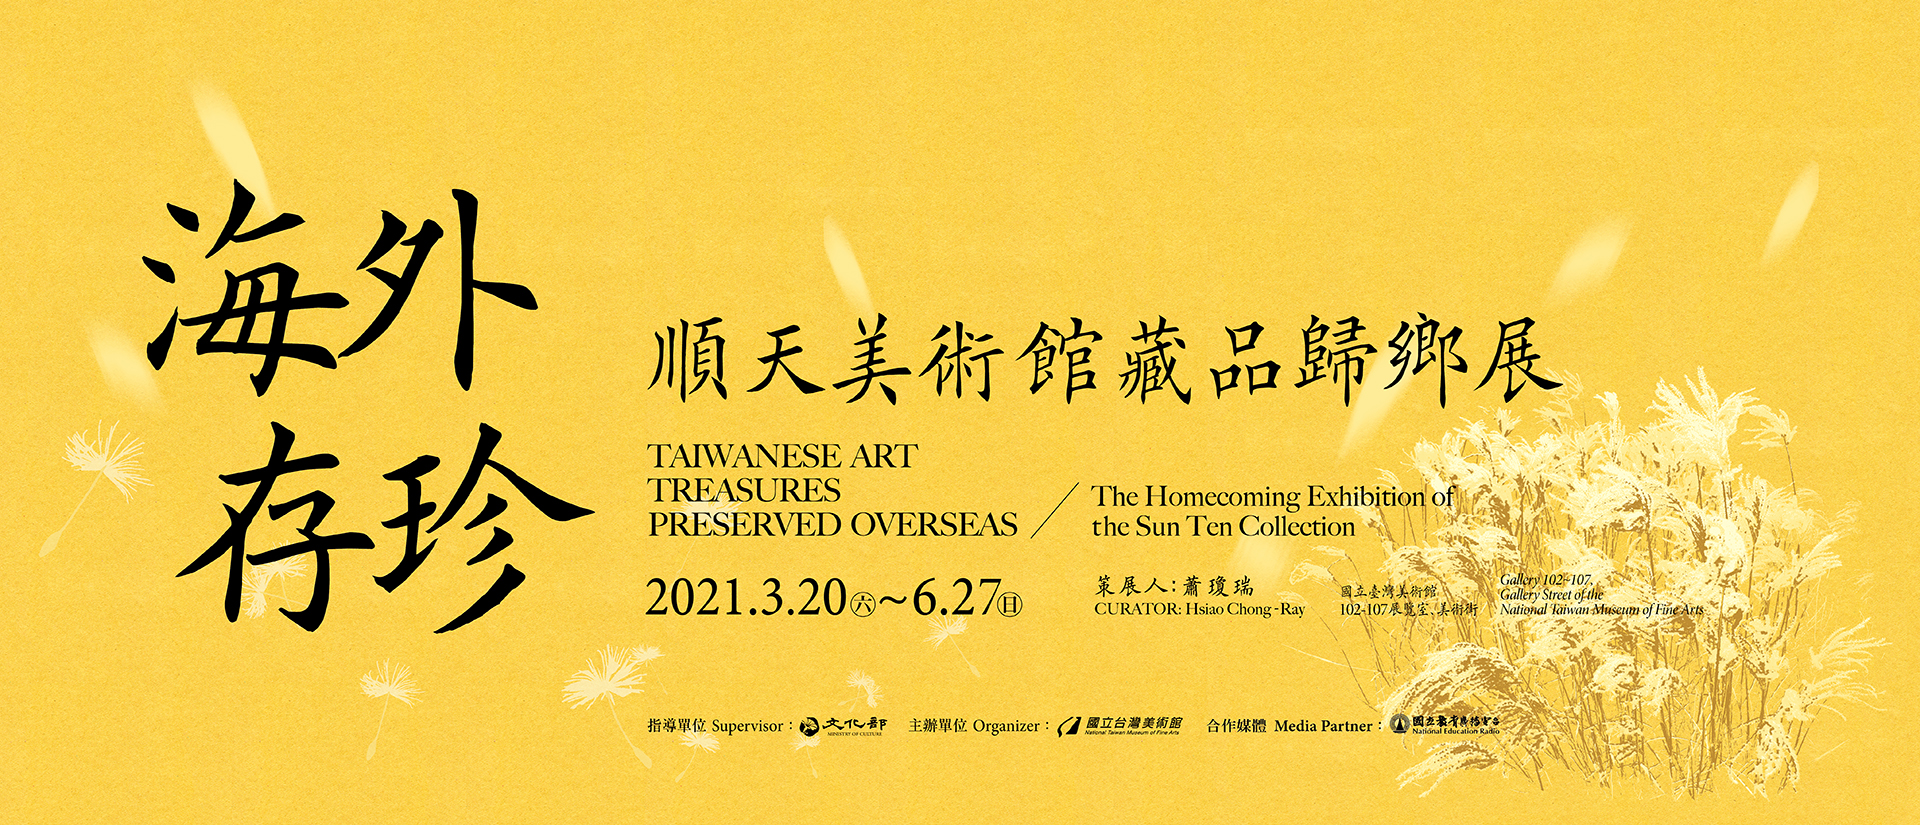 Taiwanese Art Treasures Preserved Overseas―The Homecoming Exhibition of the Sun Ten Collectionopennewwindow